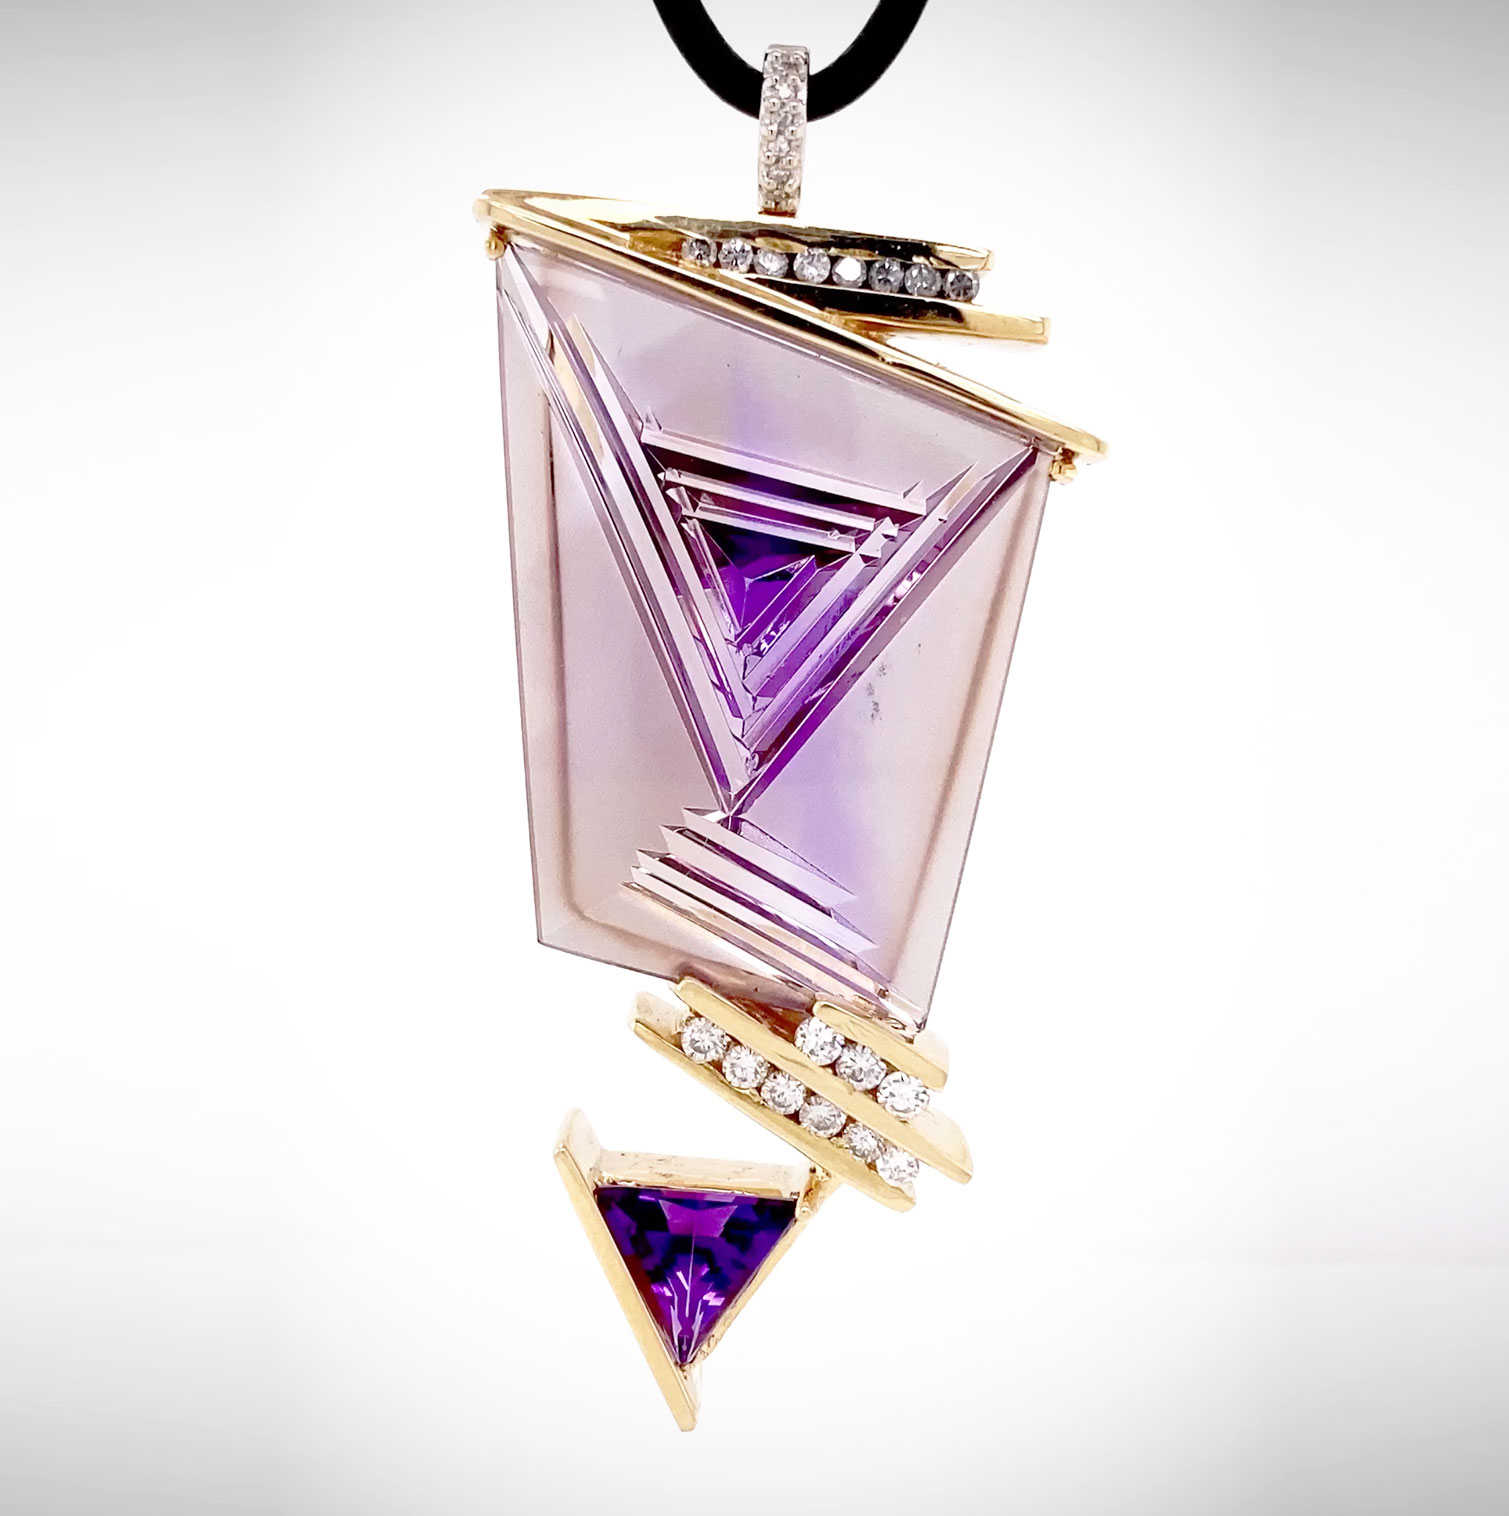 One-of-a-Kind pendant showcasing an amazing Bernd Munsteiner-cut Ametrine accented with Diamond and trillion Amethyst and crafted in 14K yellow gold